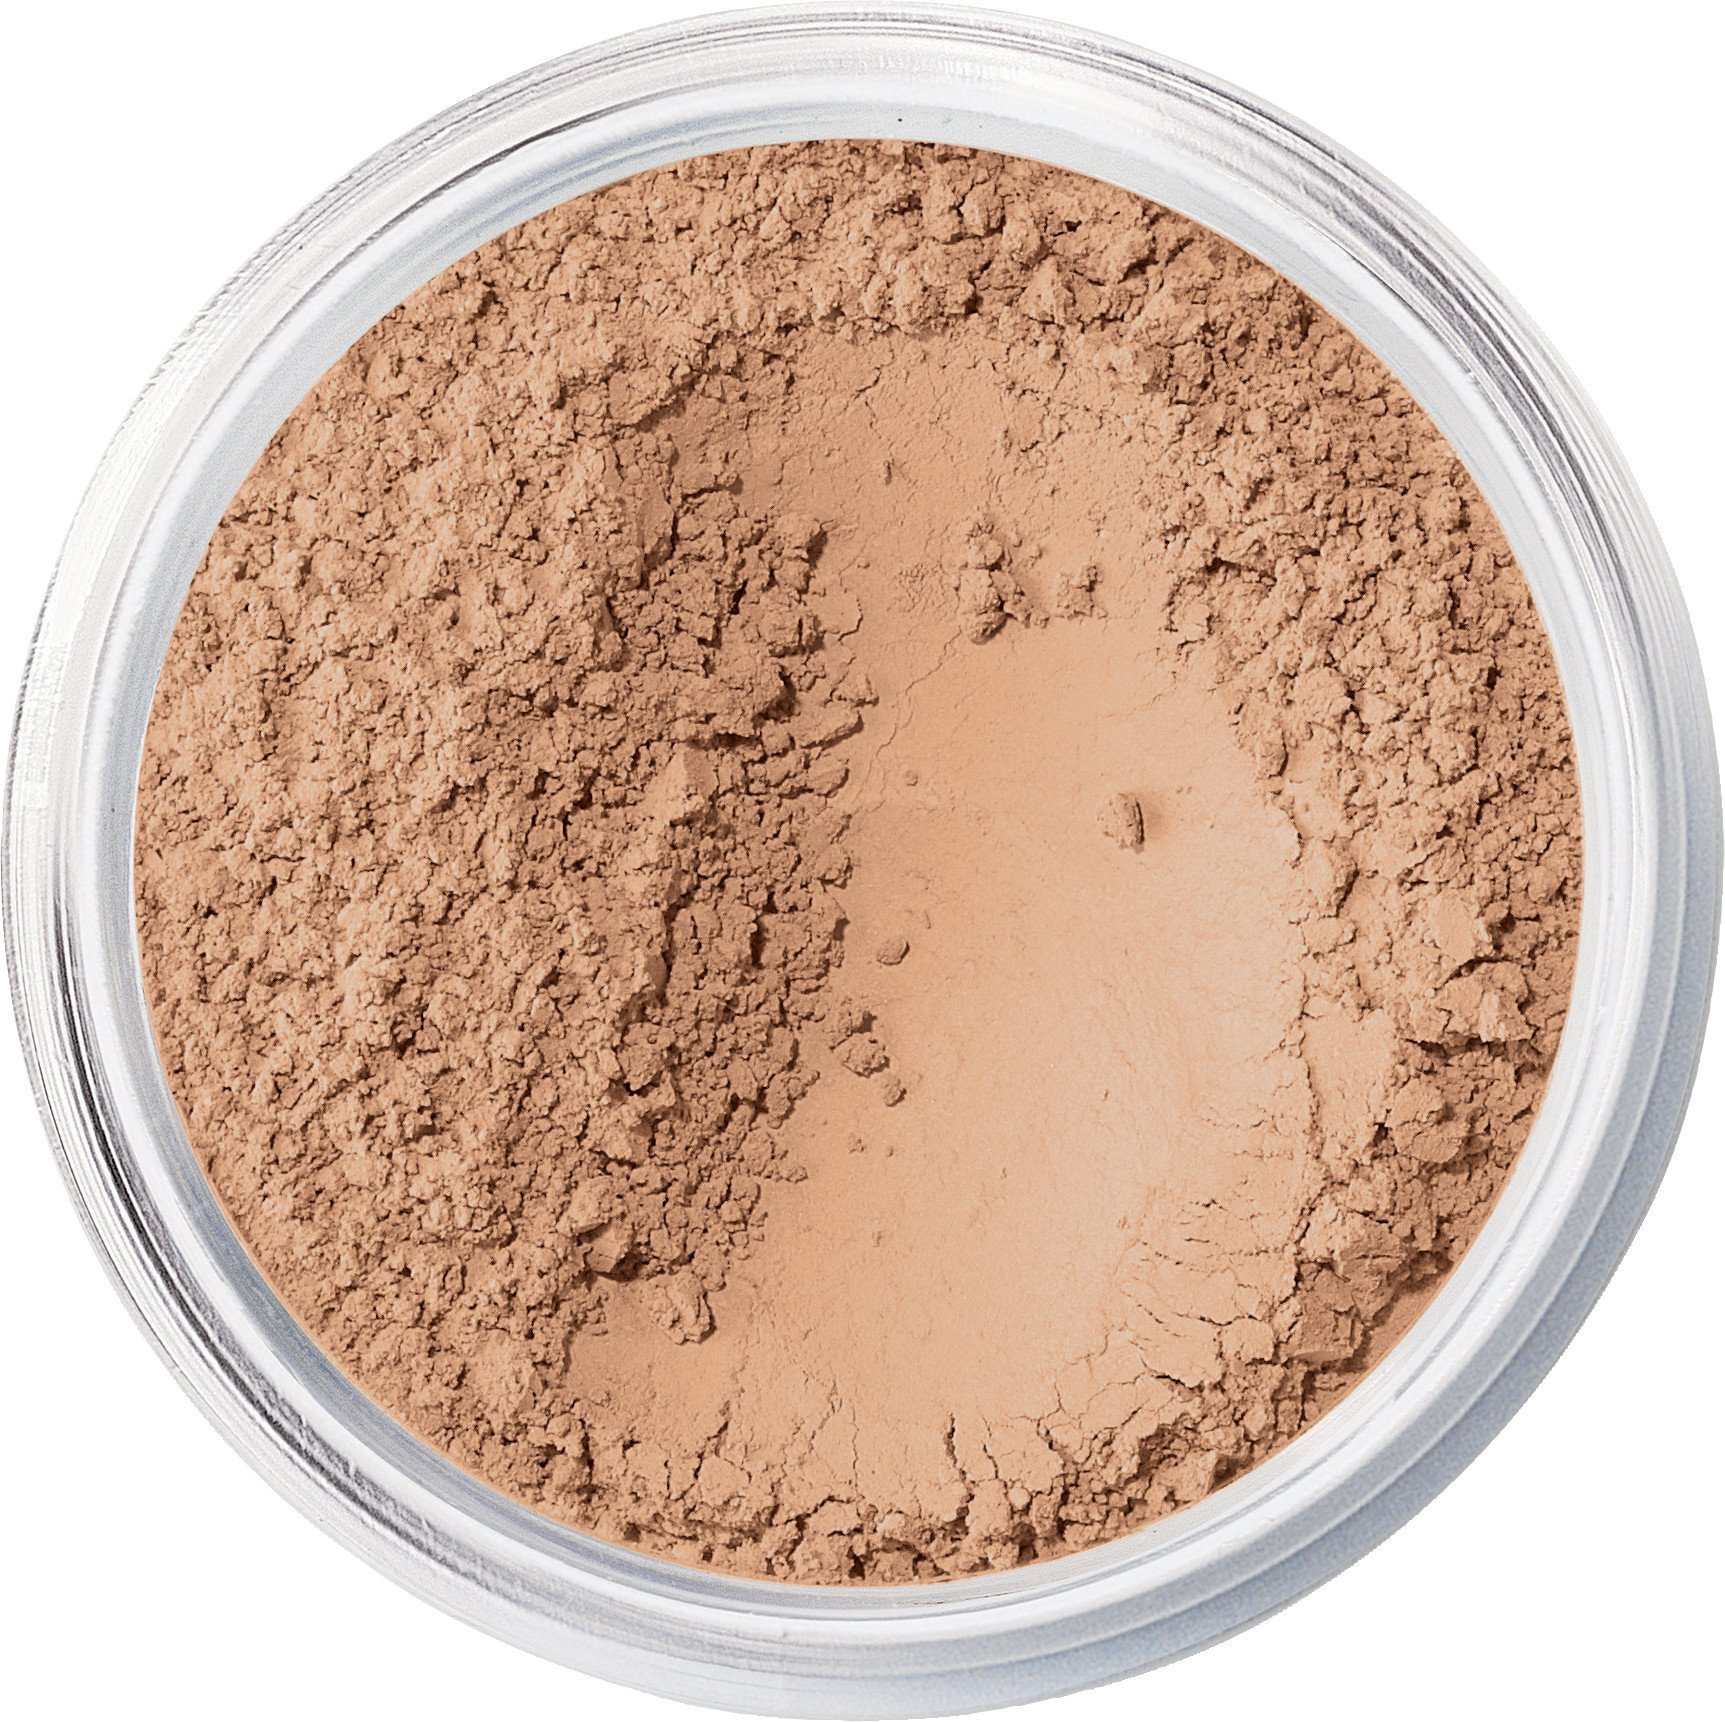 bareMinerals MATTE SPF 15 Foundation, Medium Beige. 6 Gram by bare Minerals